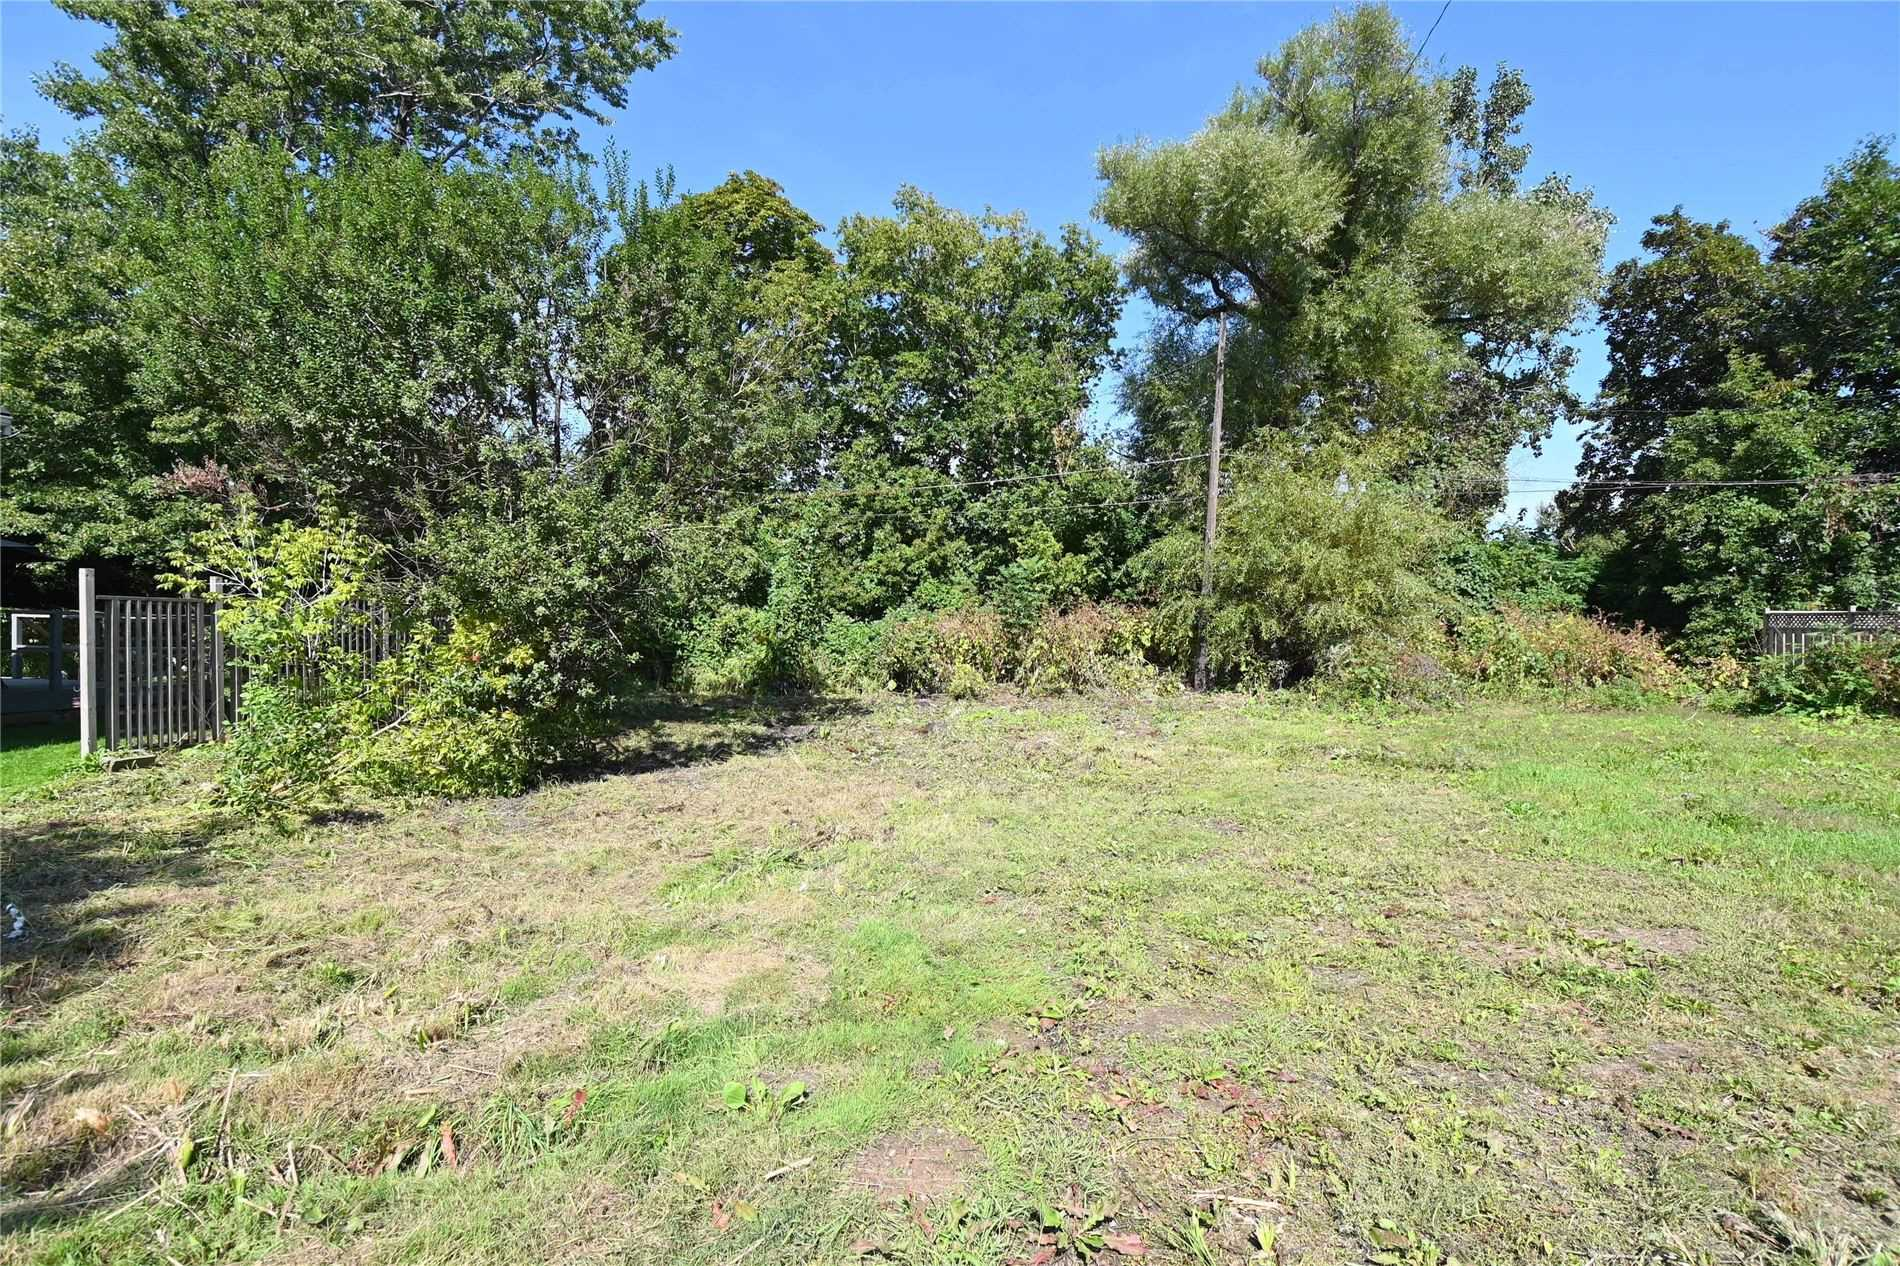 pictures of house for sale MLS: X4561637 located at 5 North Park Ave, Hamilton L8H7G7